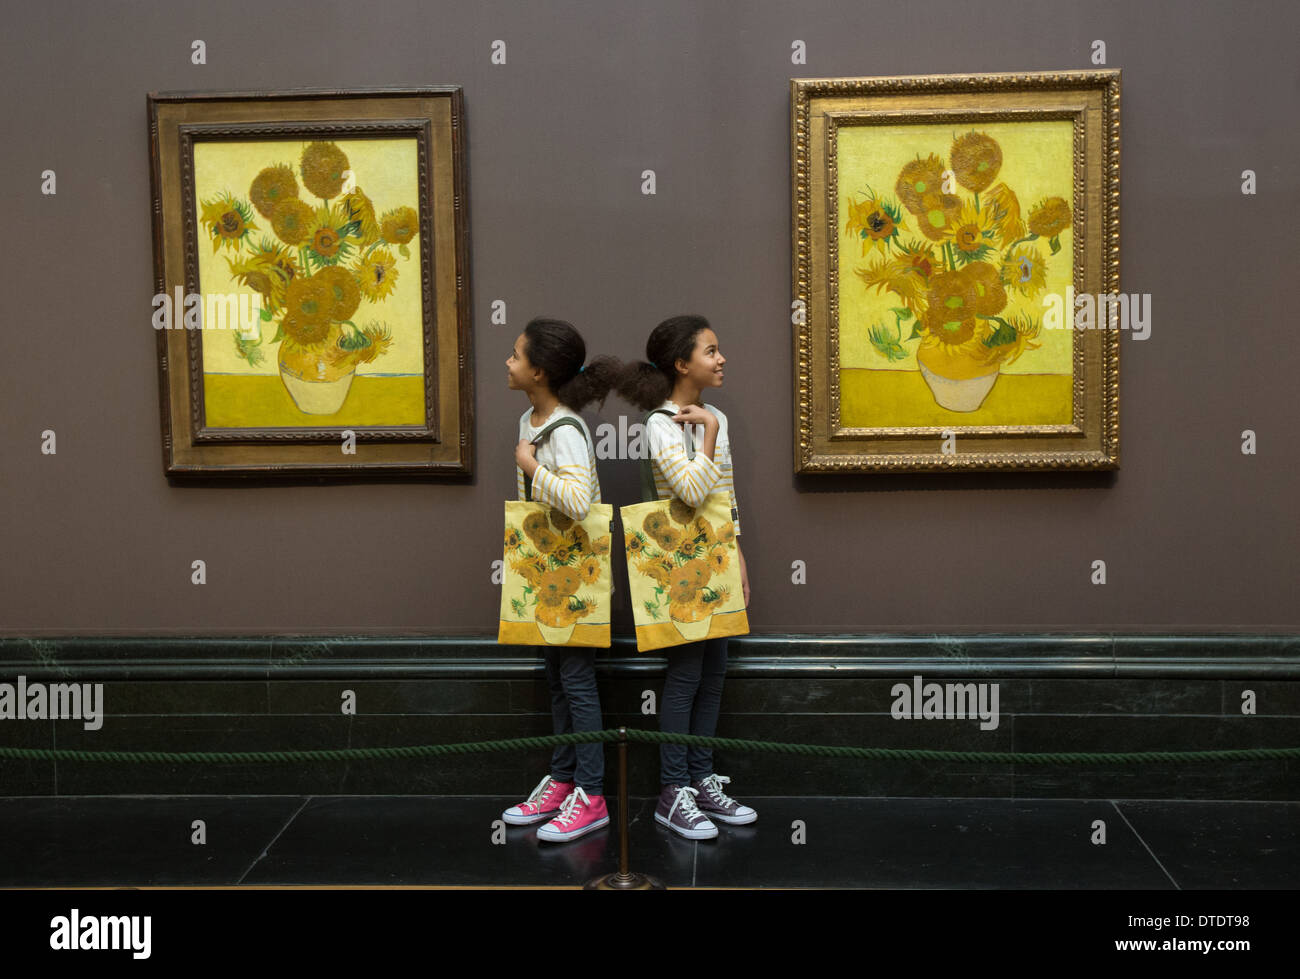 Sunflowers By Vincent Van Gogh at the National gallery - Stock Image